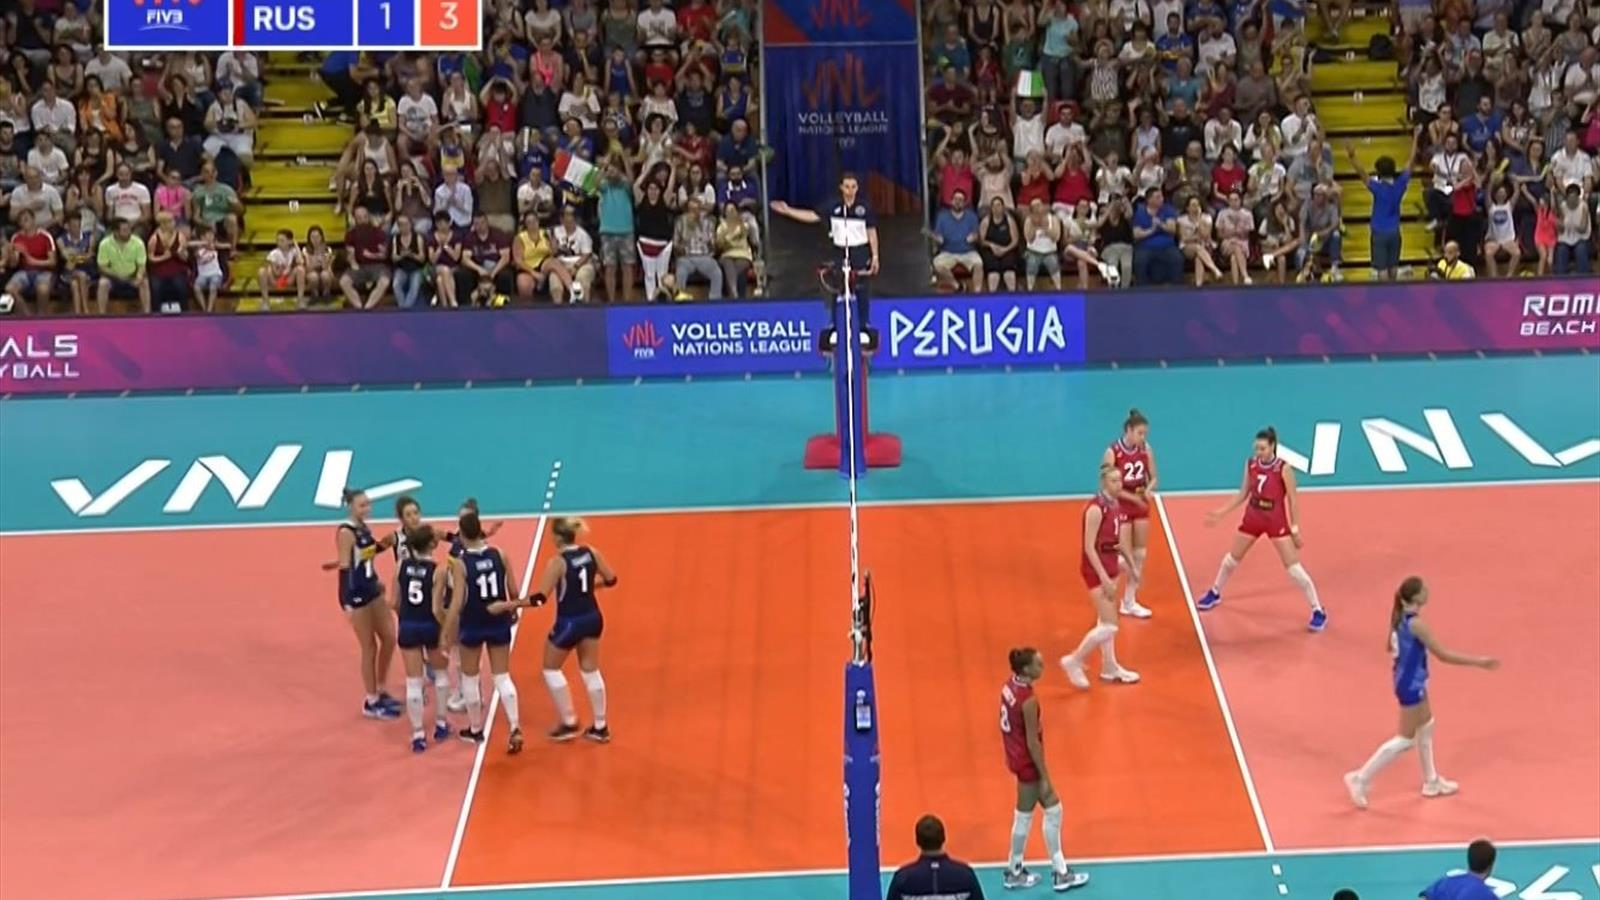 Calendario Volley Mondiali 2020.Volleyball Nations League Italia Russia 3 1 Gli Highlights